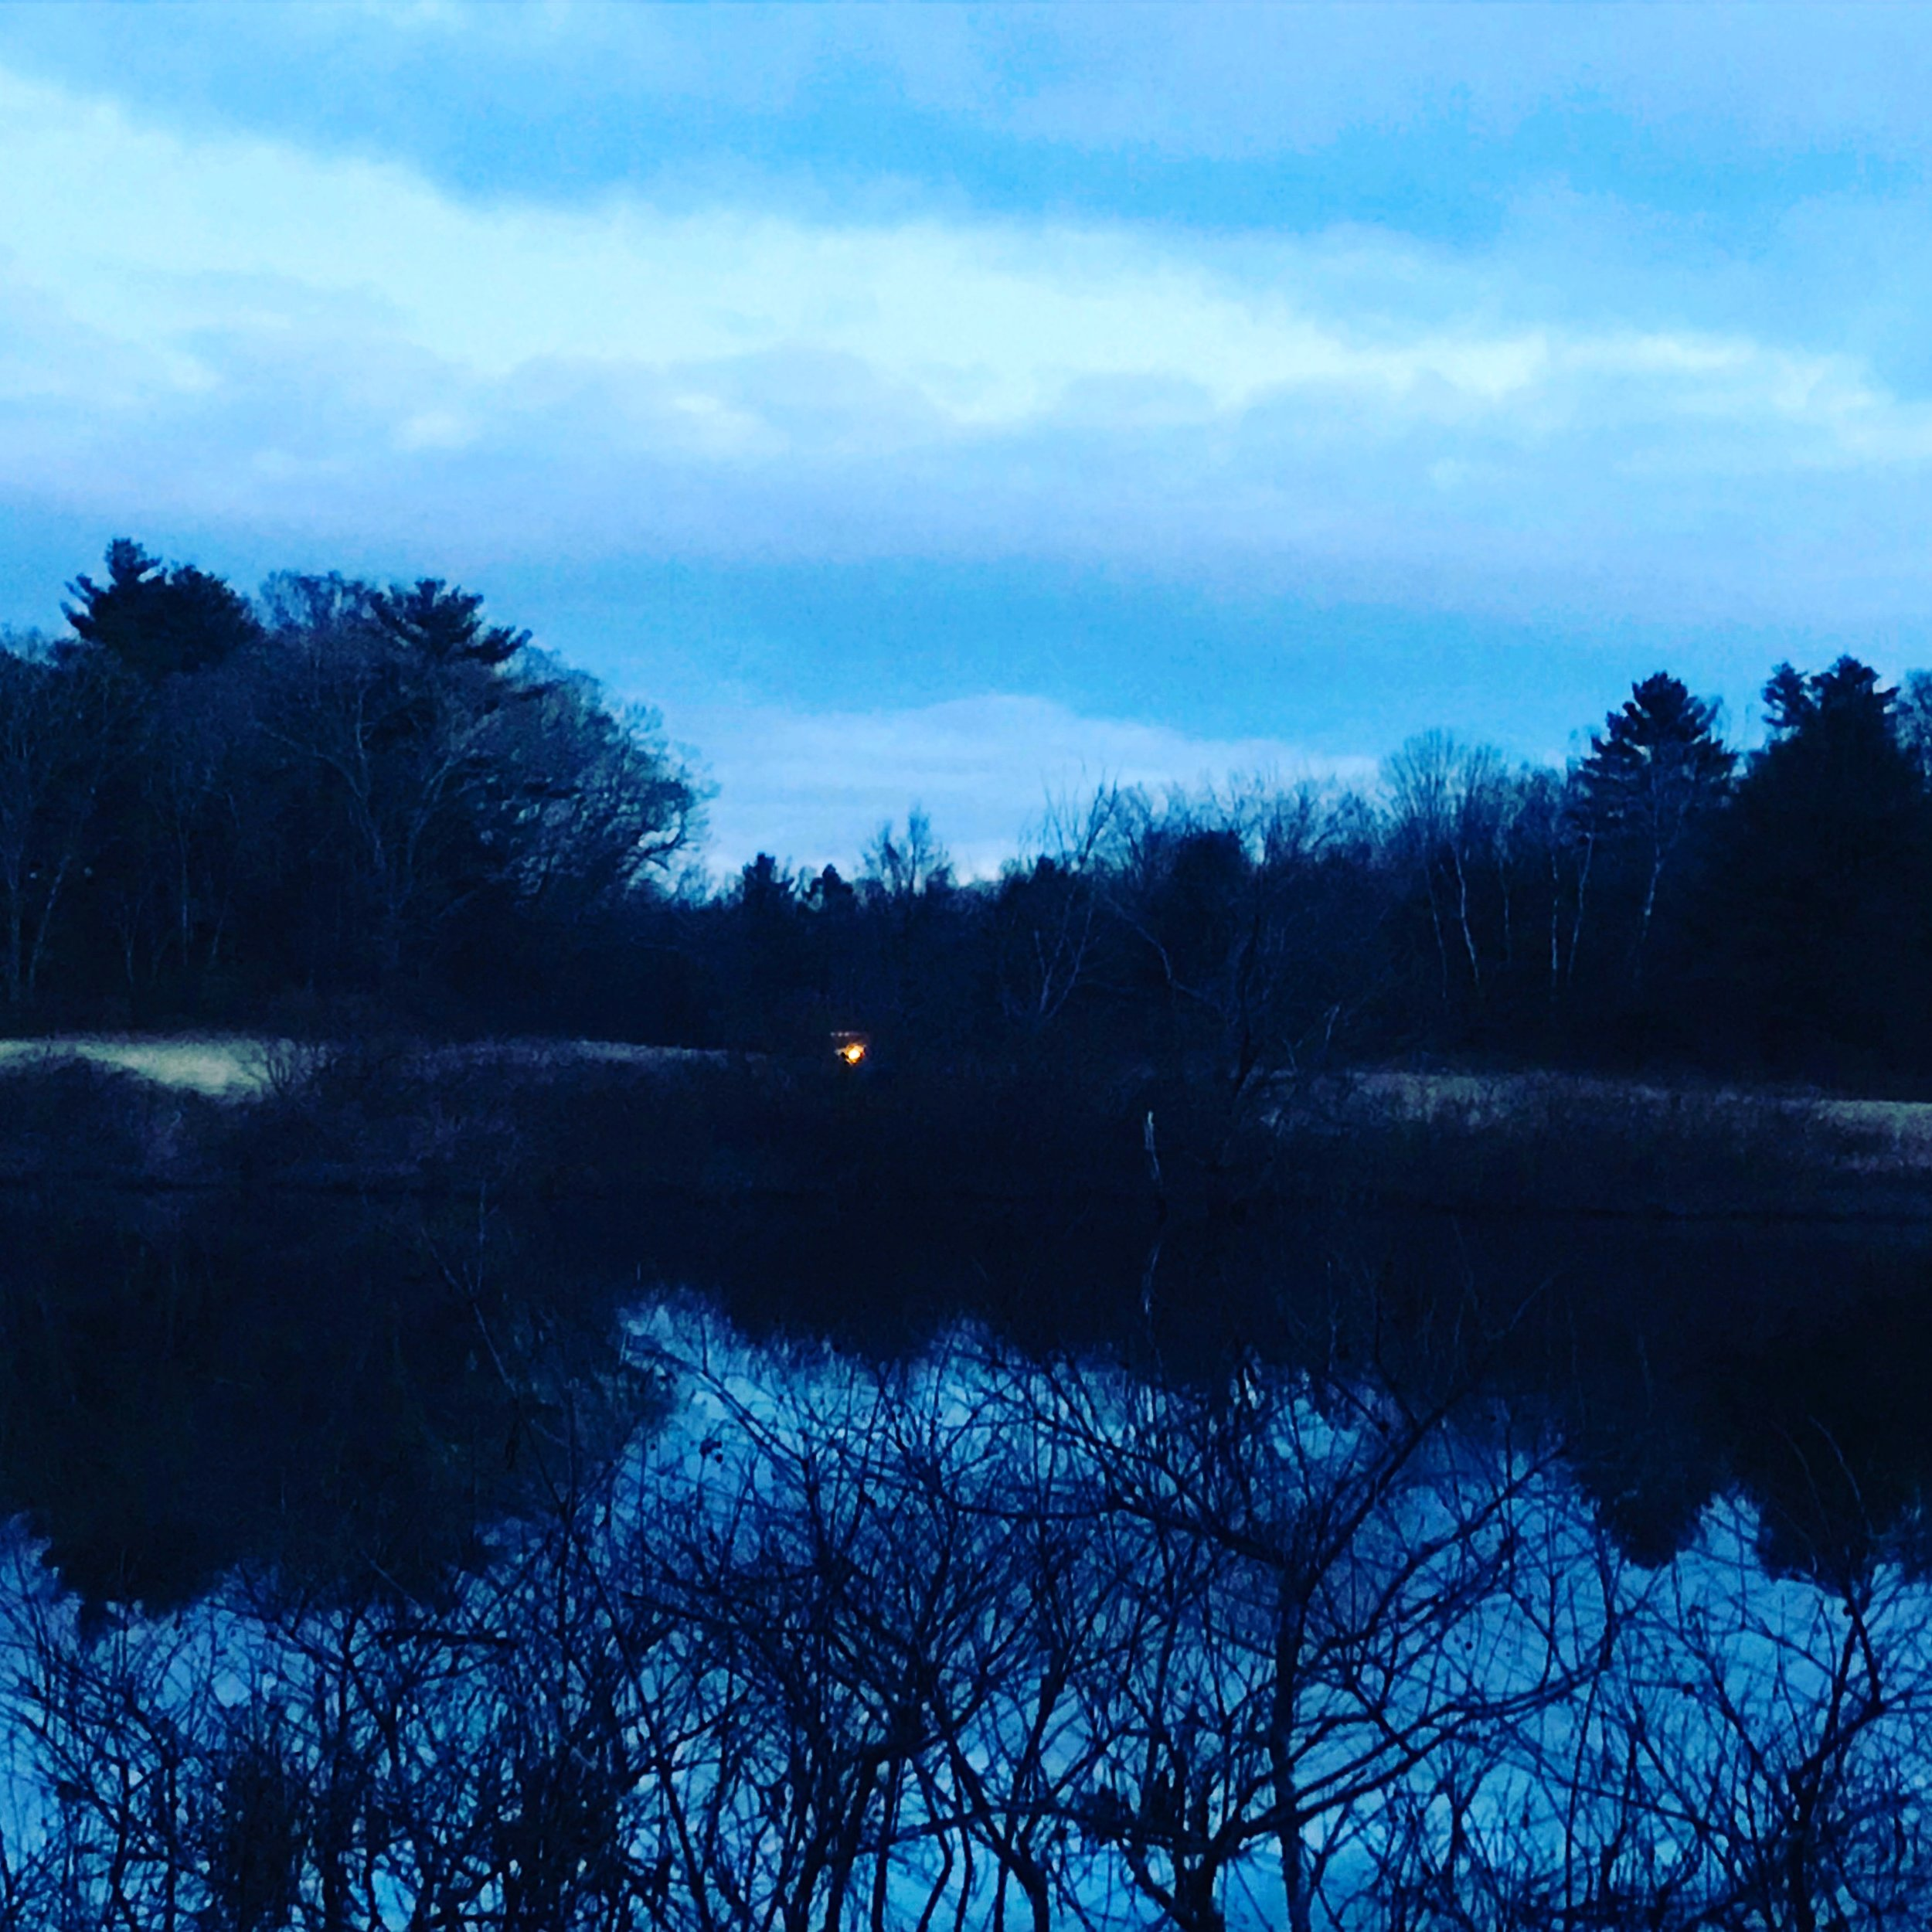 Evening on the Charles